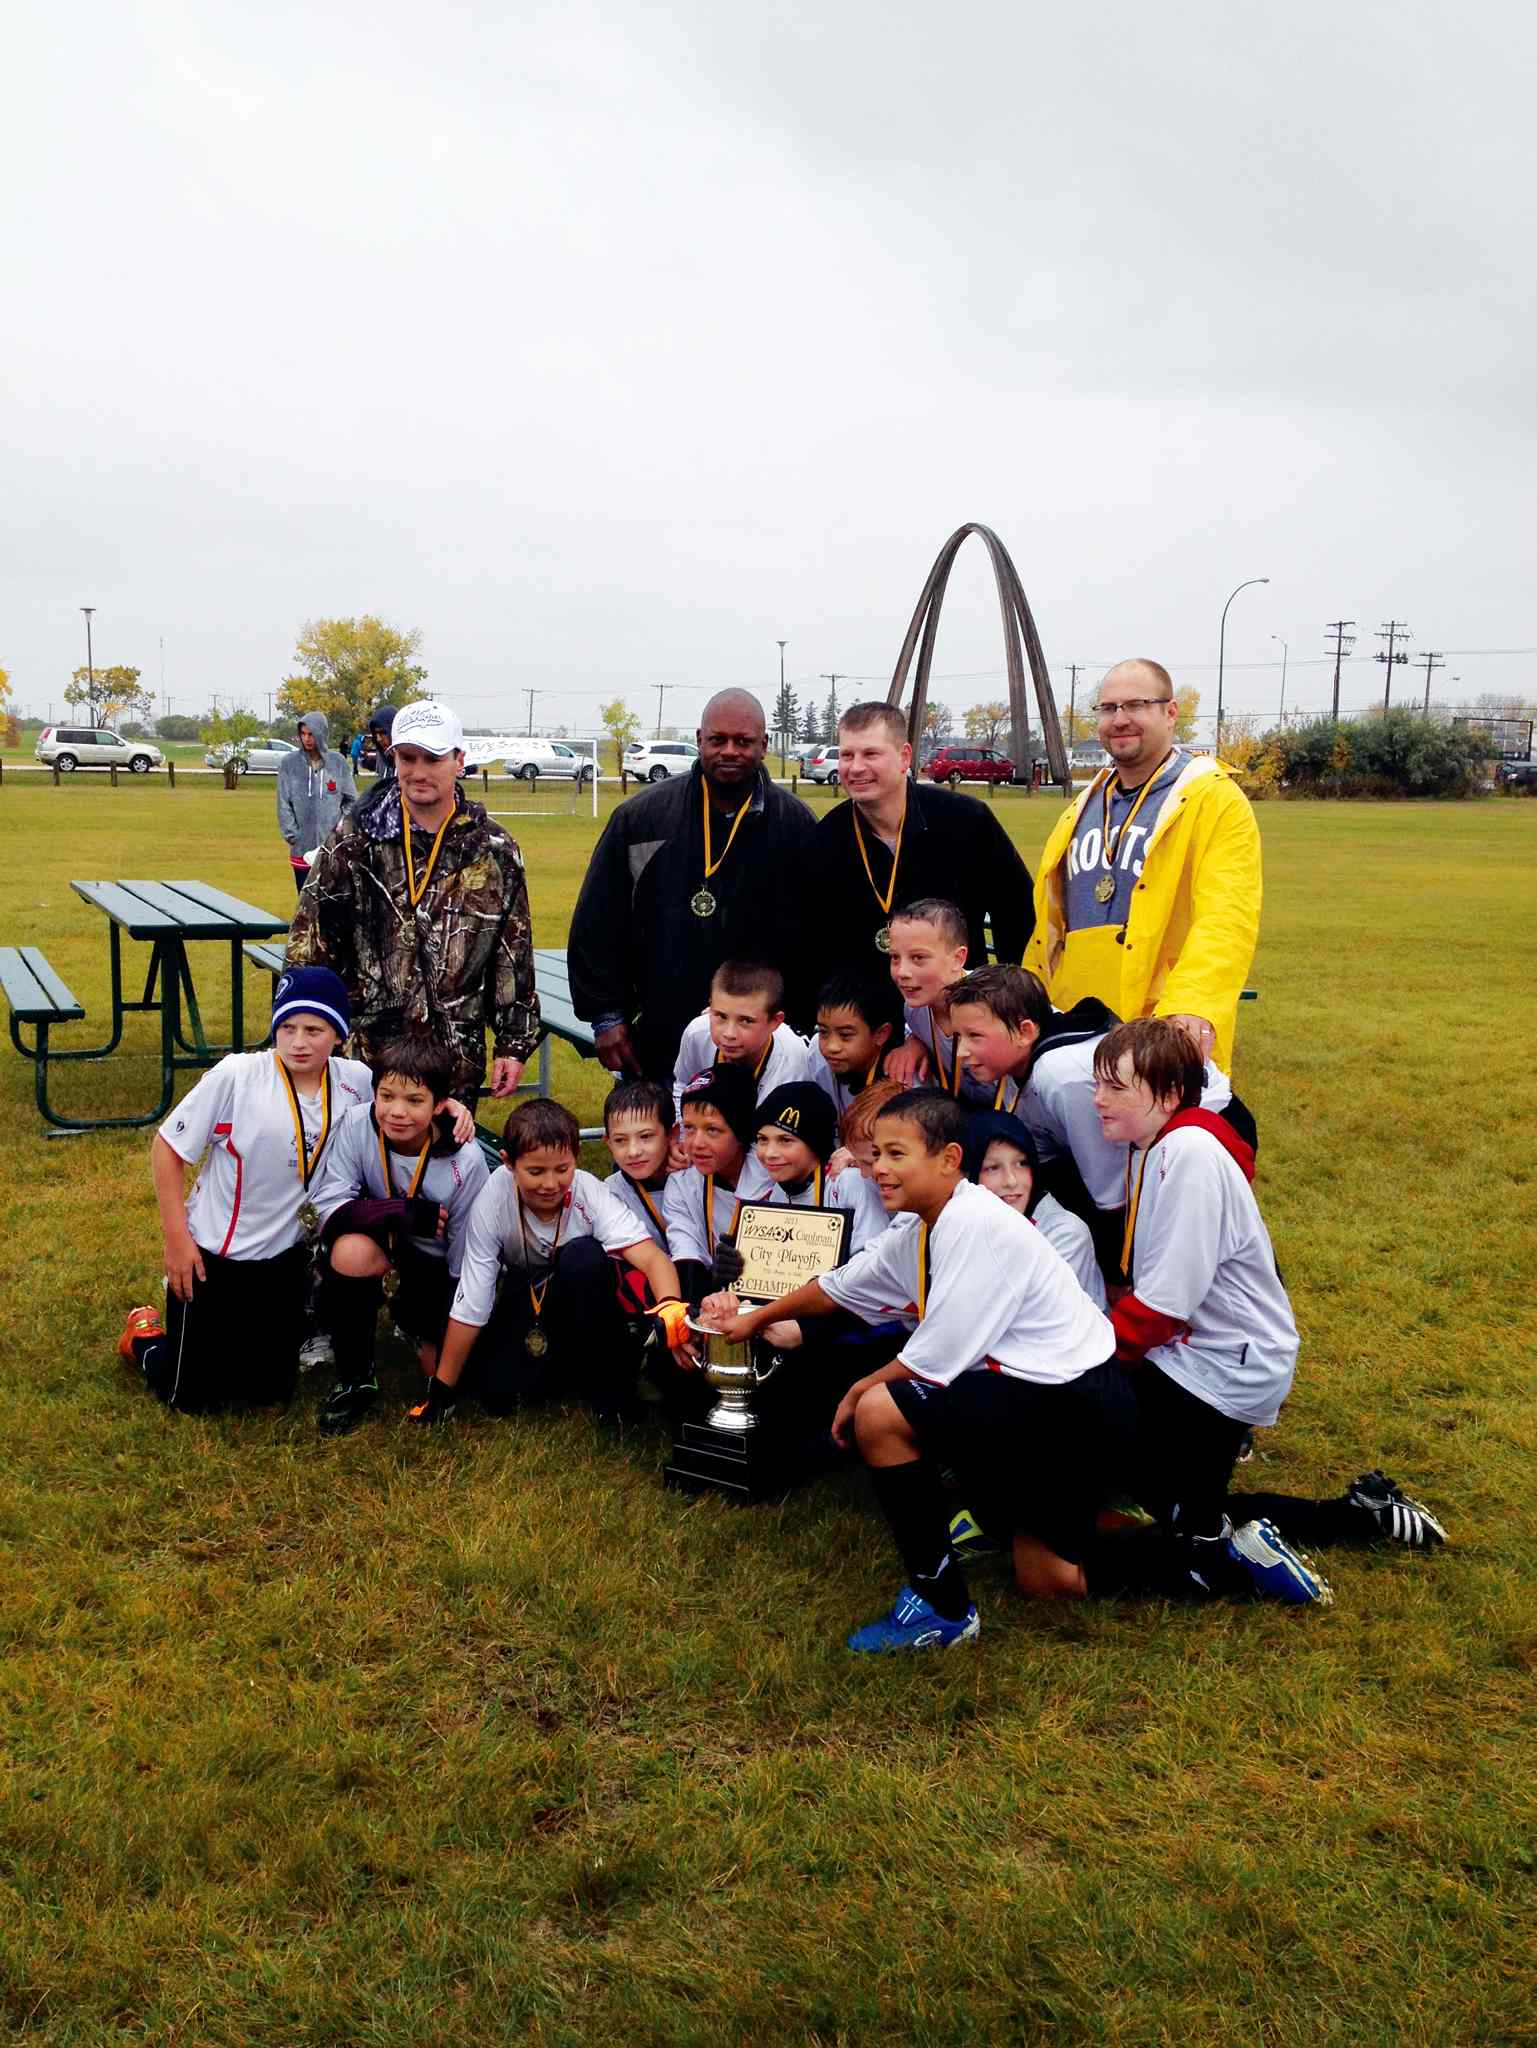 The Park City West U11 boys' soccer team captured the Cambrian City Championship with a 1-0 extra-time victory over Lindenwoods on Sept. 28. The team posted an 11-1-1 regular season record before rolling through the playoffs. Back row: Rob Rayner (assistant coach), KC Clark (coach), Stan Watcher (assistant coach), Greg Batiuk (coach). Middle row: Jeremy Watcher, Lawrence Polincia, Aiden Hordyck, Justin Joyal, Mathew Smith. Front row: Connor Batiuk, Colby Nicol, Michael Sears, Brayden Graben, Gareth Cosgrove, Brayden Edel, Joshua Muzik, Noah Rayner, Tyson Clark.